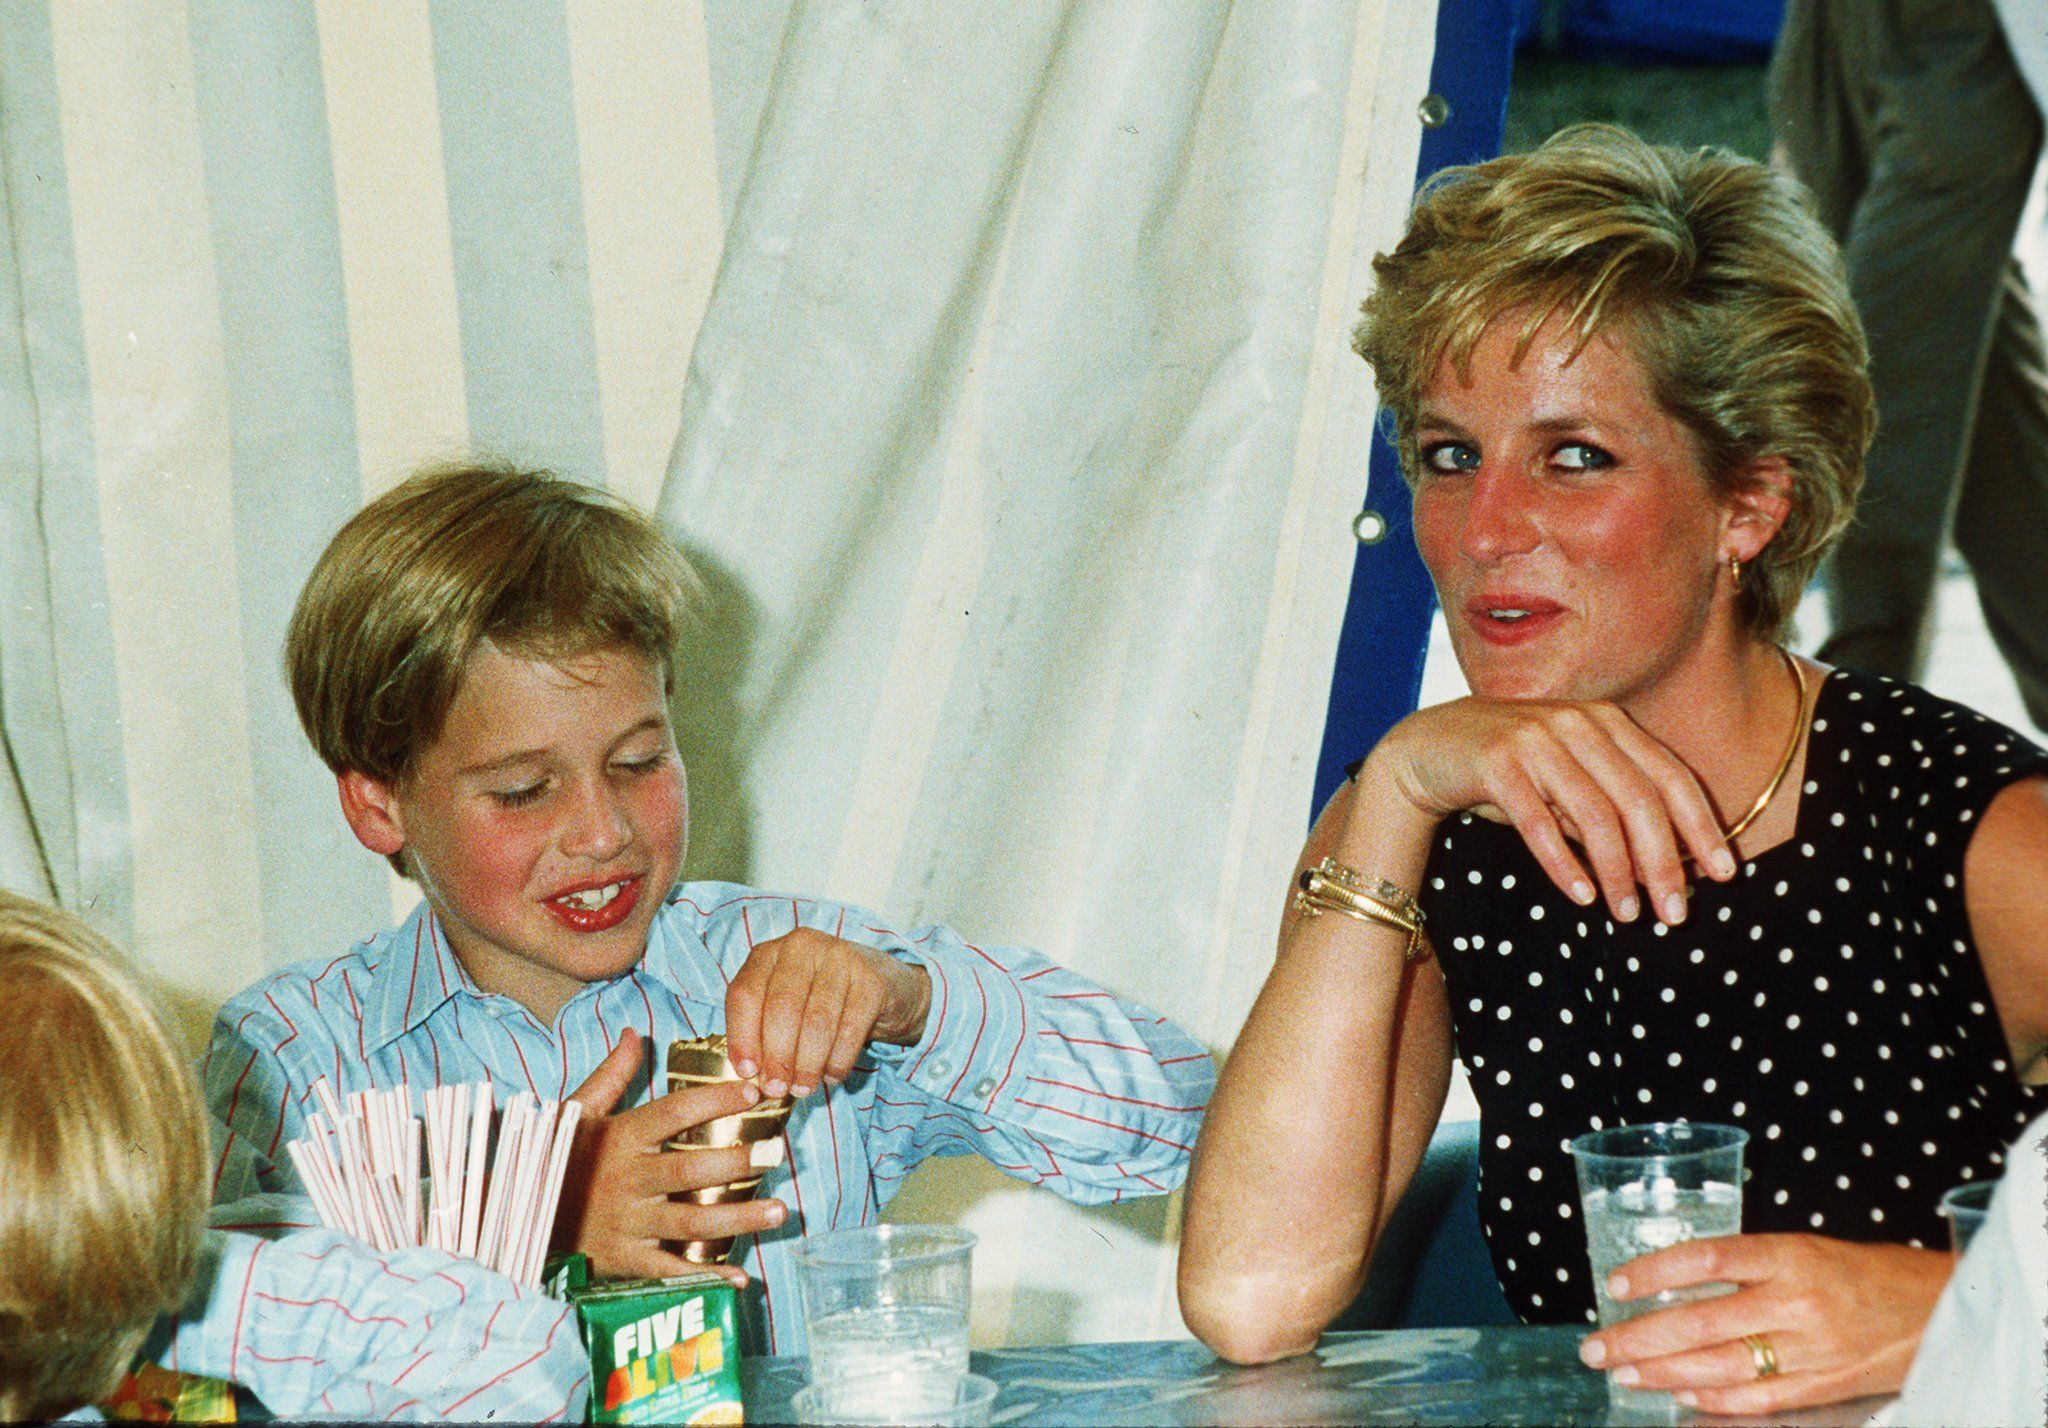 When Prince Charles and Princess Diana ended their marriage in 1996, their oldest son, Prince William, was just 14 years old. At the time, he was a student at Eton College studying biology, art history, and geography and playing soccer and water polo. He hadn't yet begun his official royal duties or